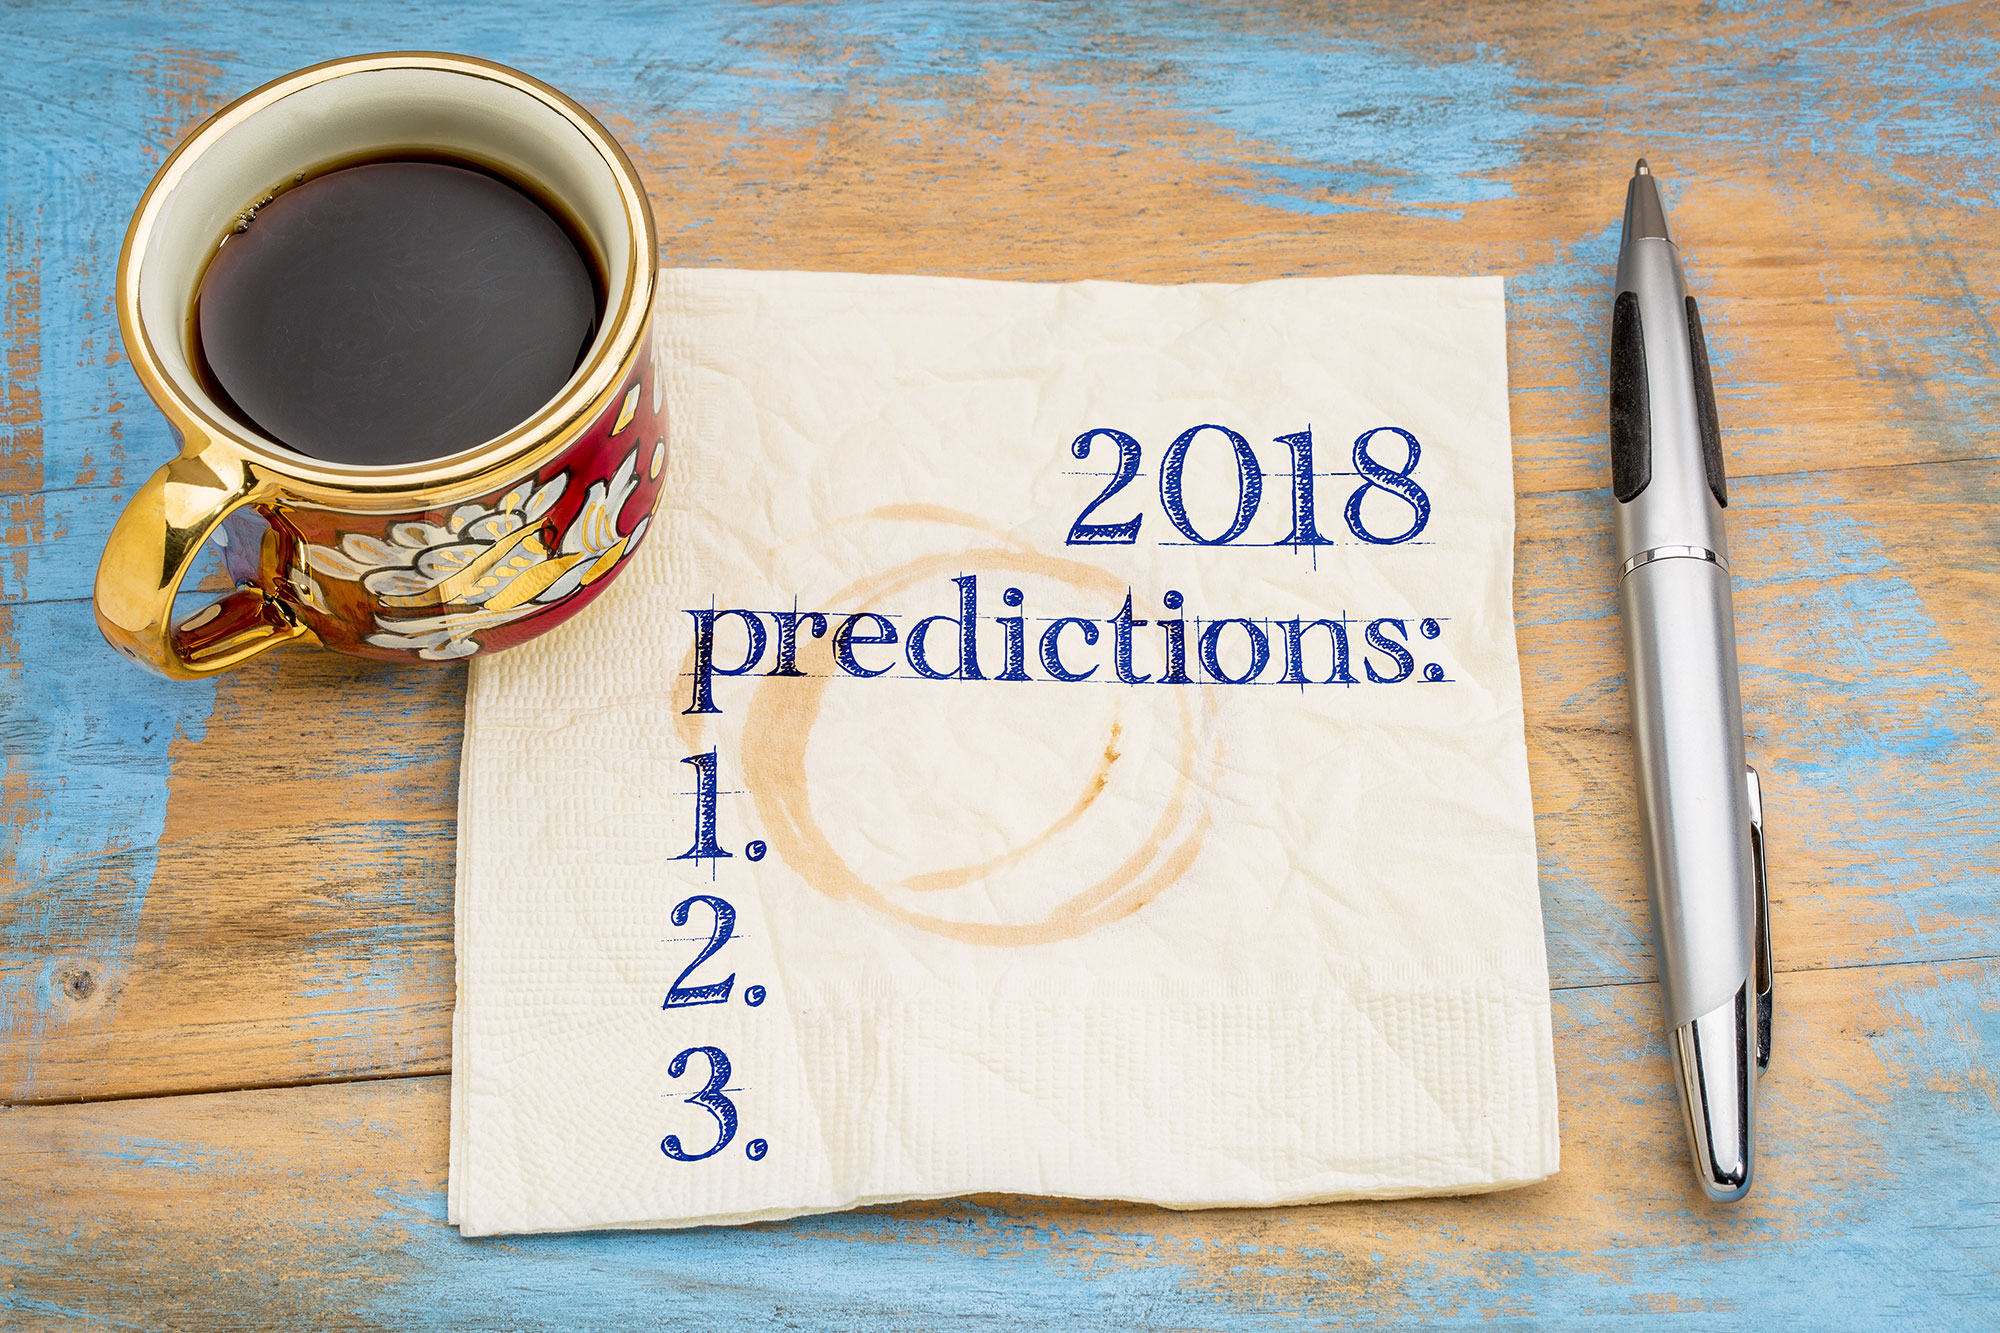 My Hot Picks for 2018 – GPU Acceleration, Hybrid Clouds and Stateless Access to Storage